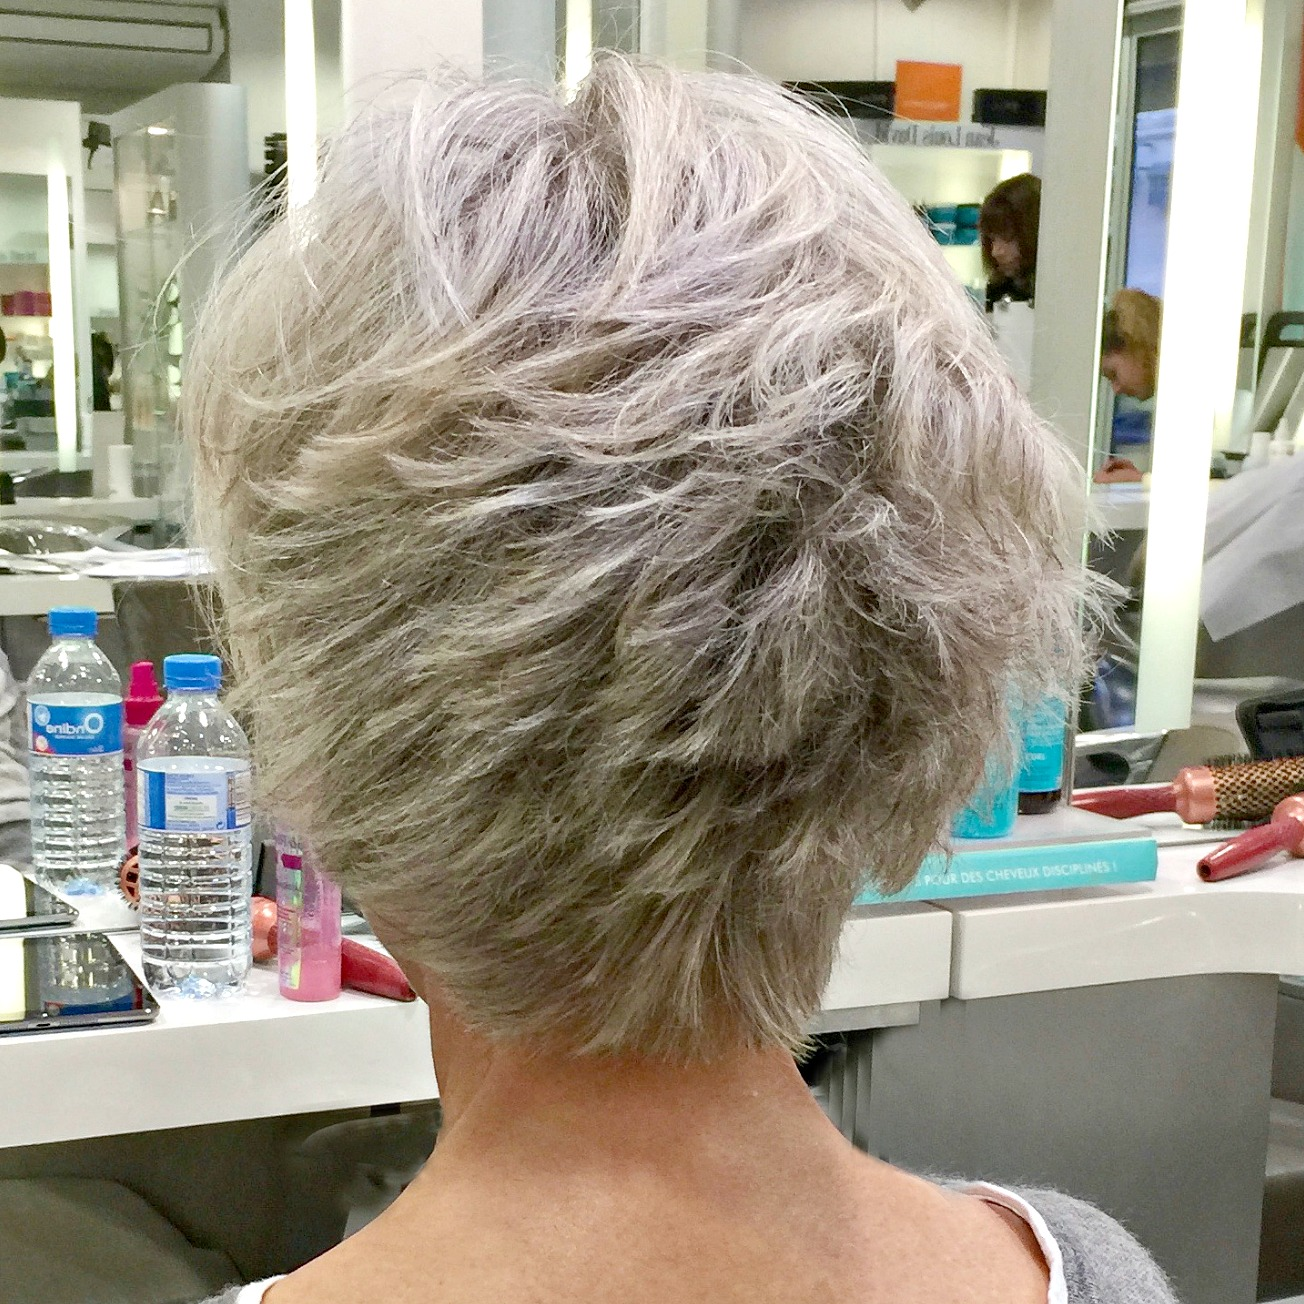 How to manage grey hair